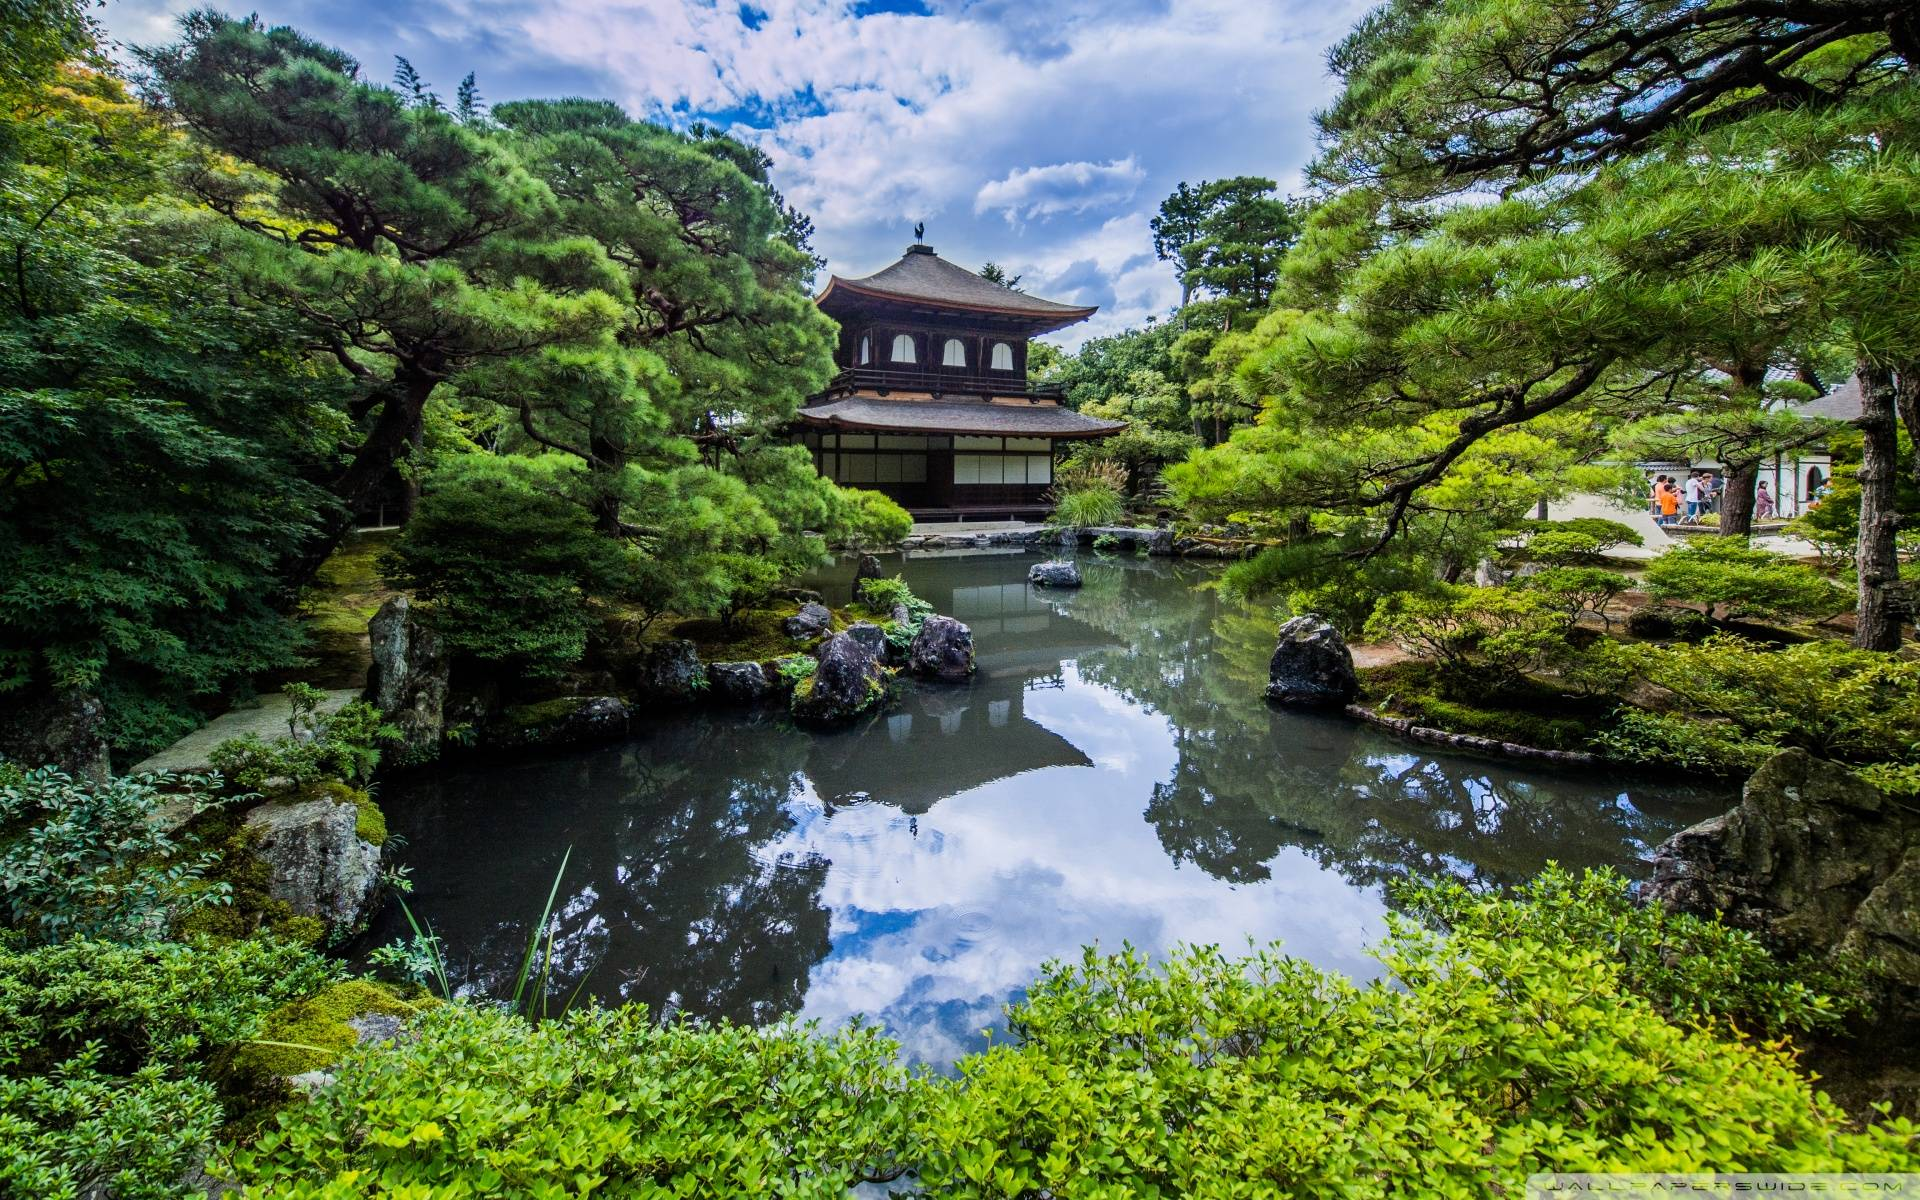 Hd wallpaper garden - Japanese Garden Hd Wallpapers Hd Wallpapers Inn